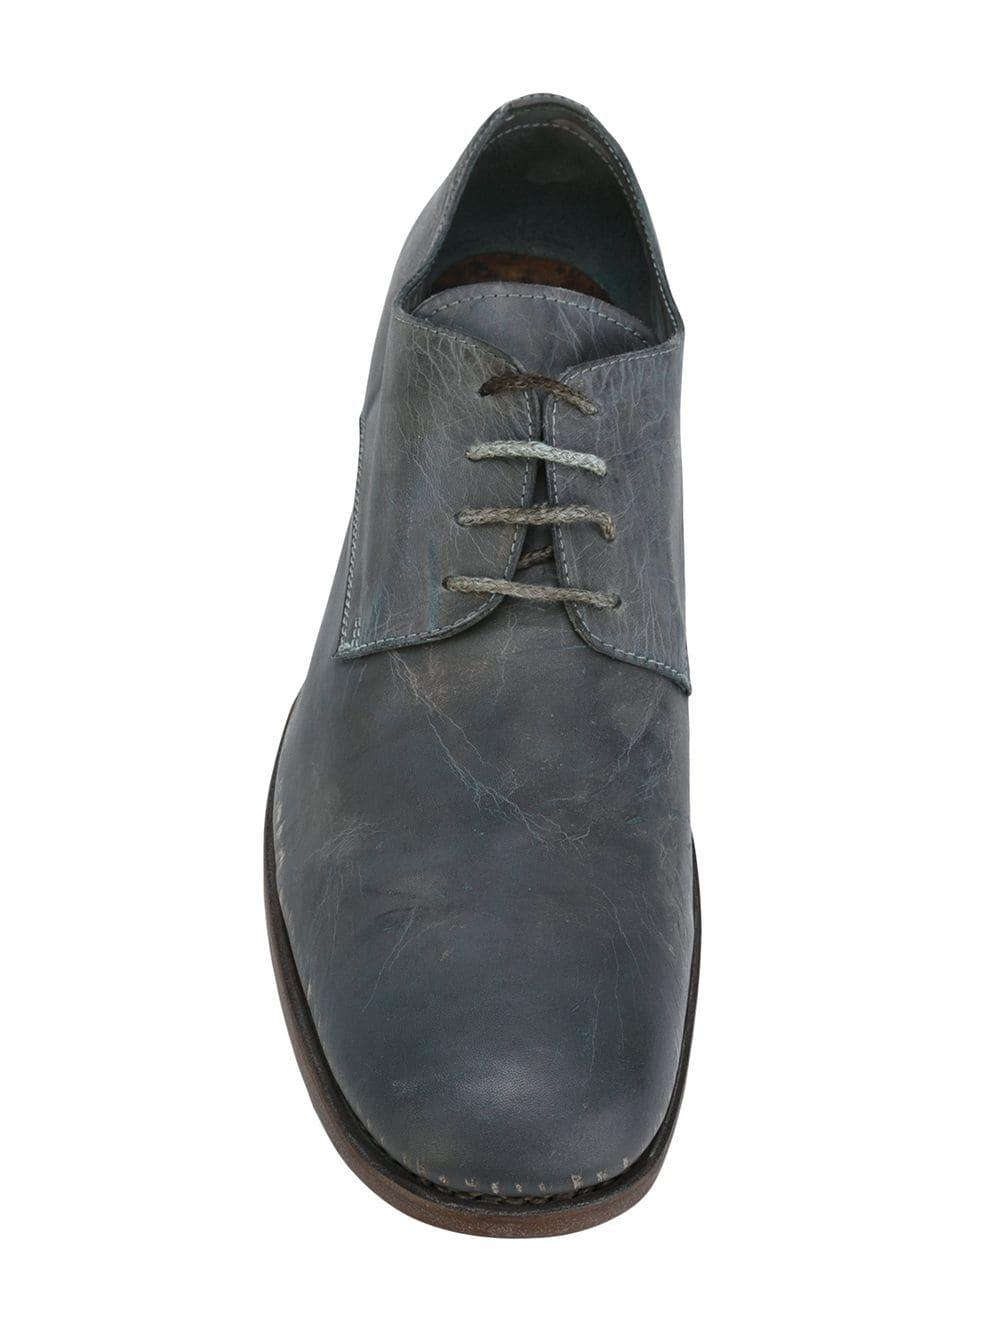 A Diciannoveventitre Leather Distressed Derby Shoes in Grey (Grey) for Men